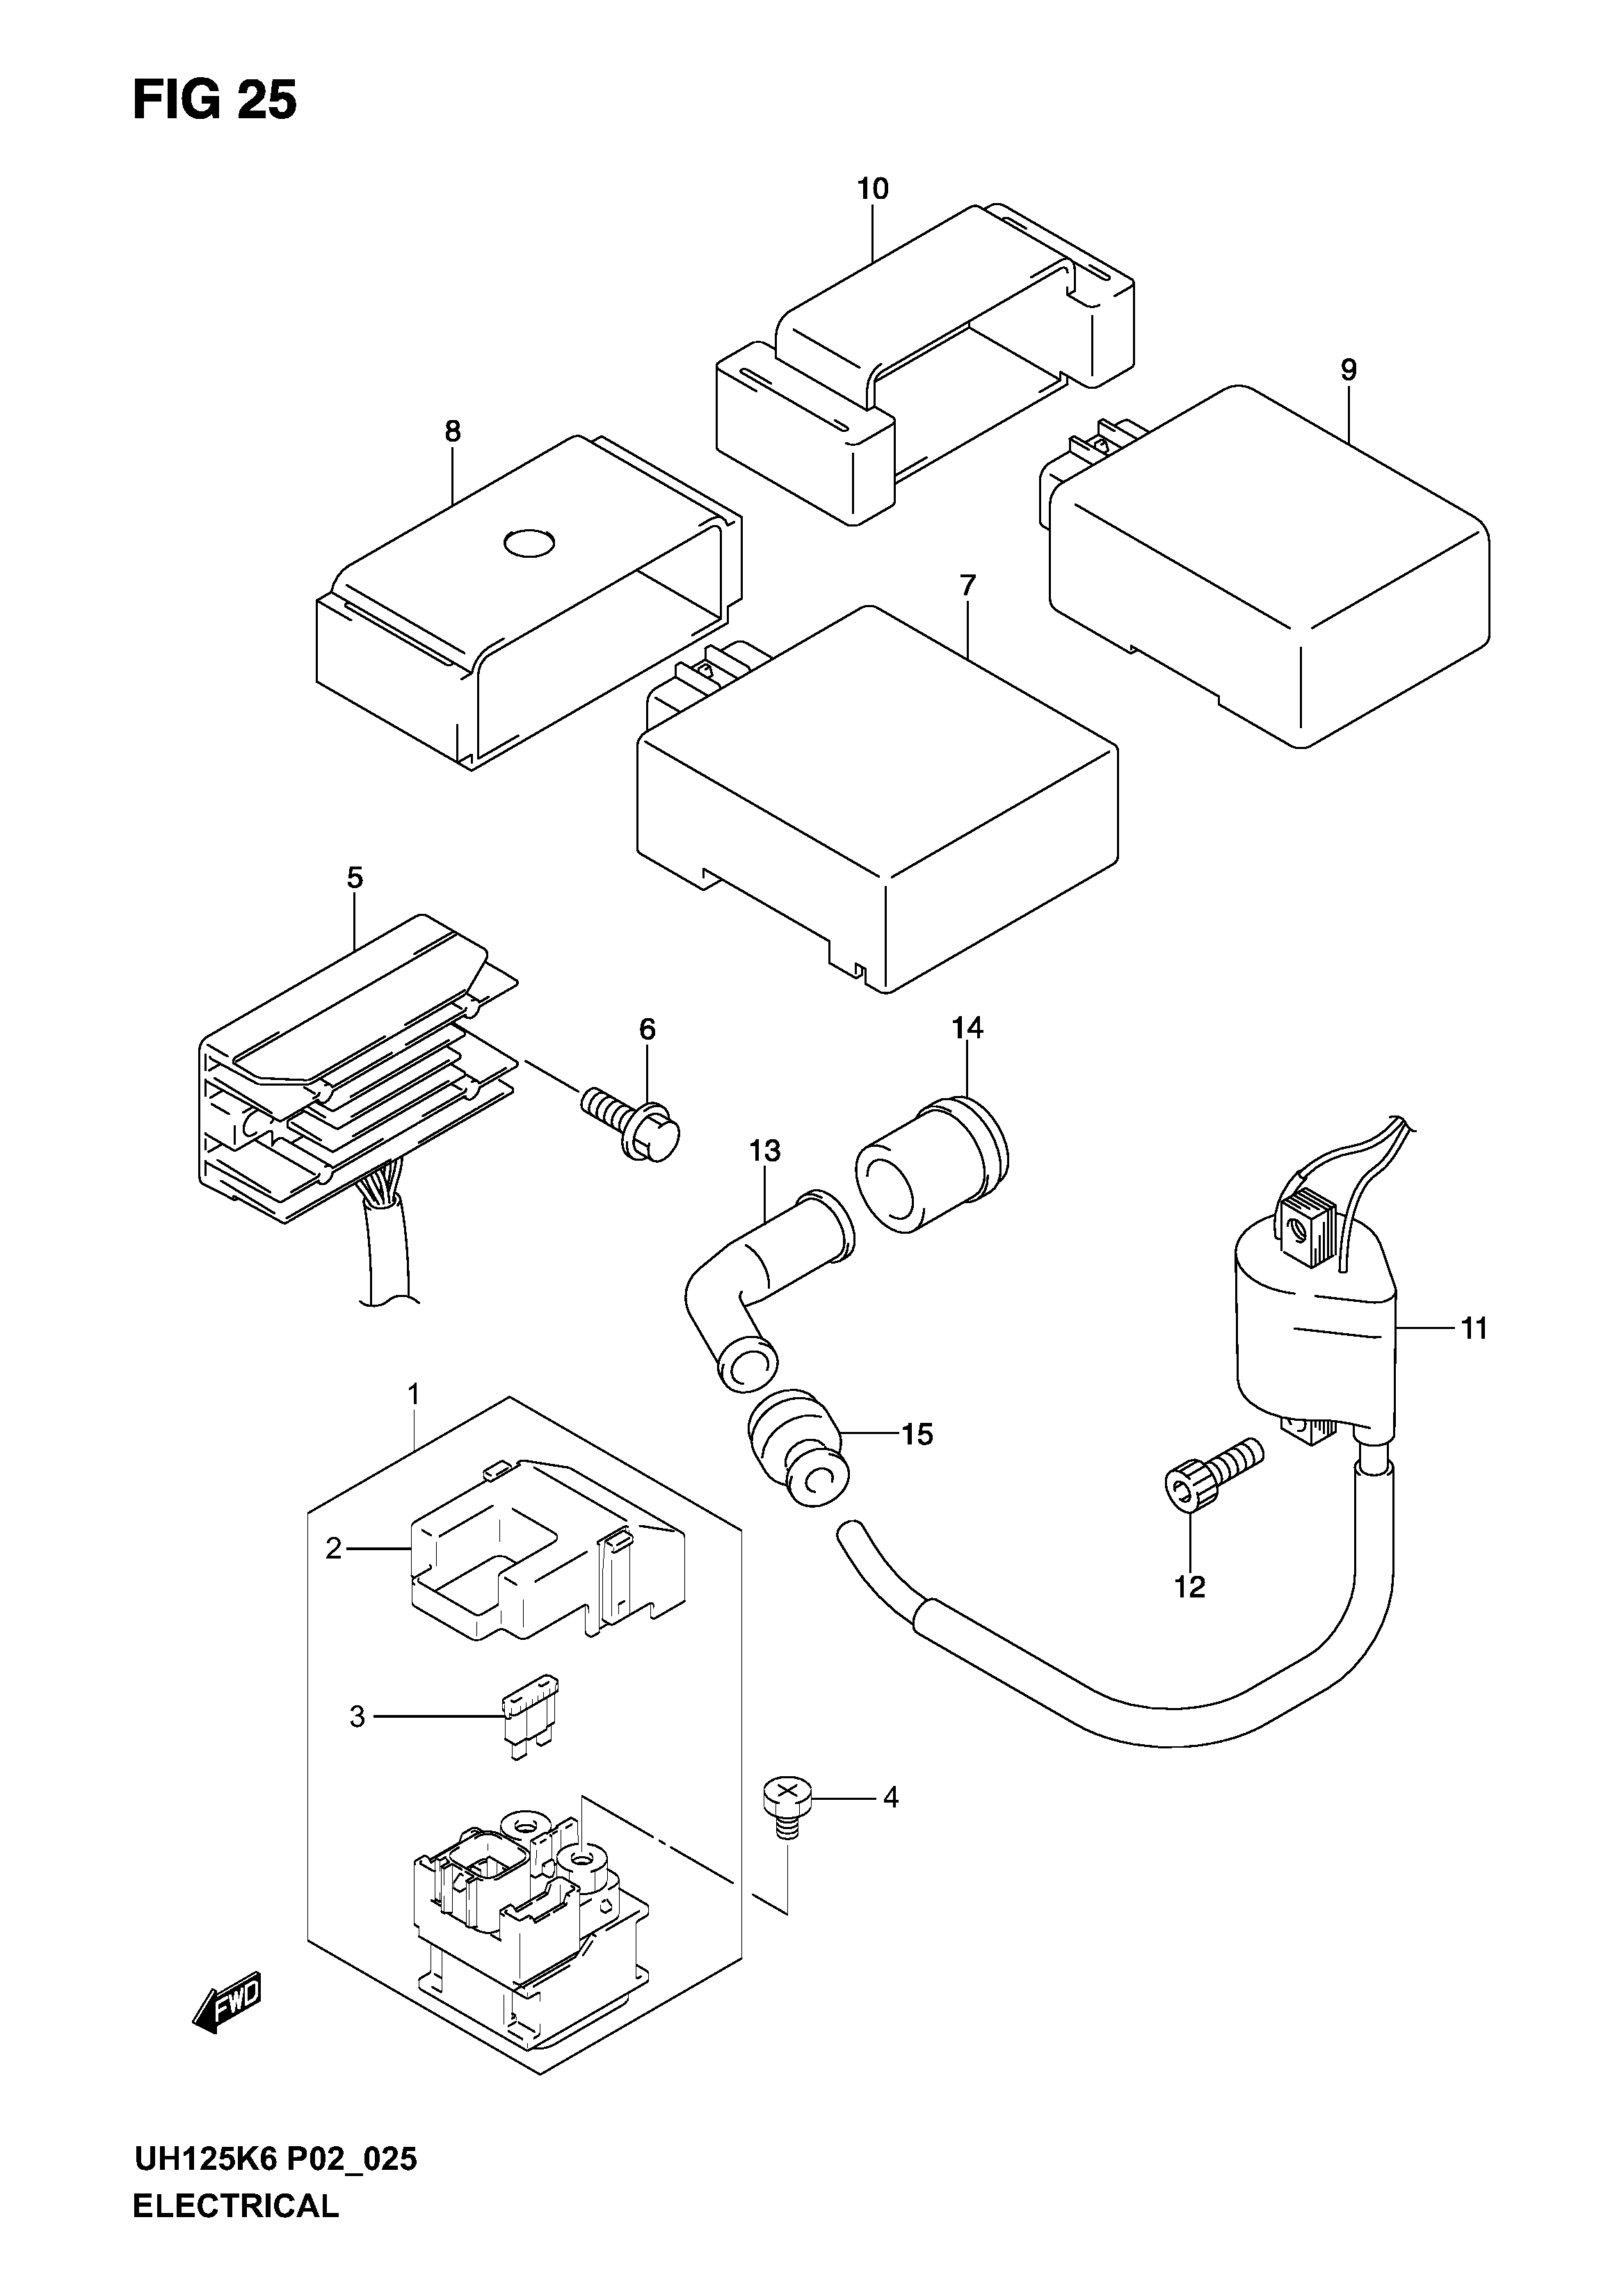 Salt Water Softener System Diagram Http Wwwcleanwaterstorecom Sof